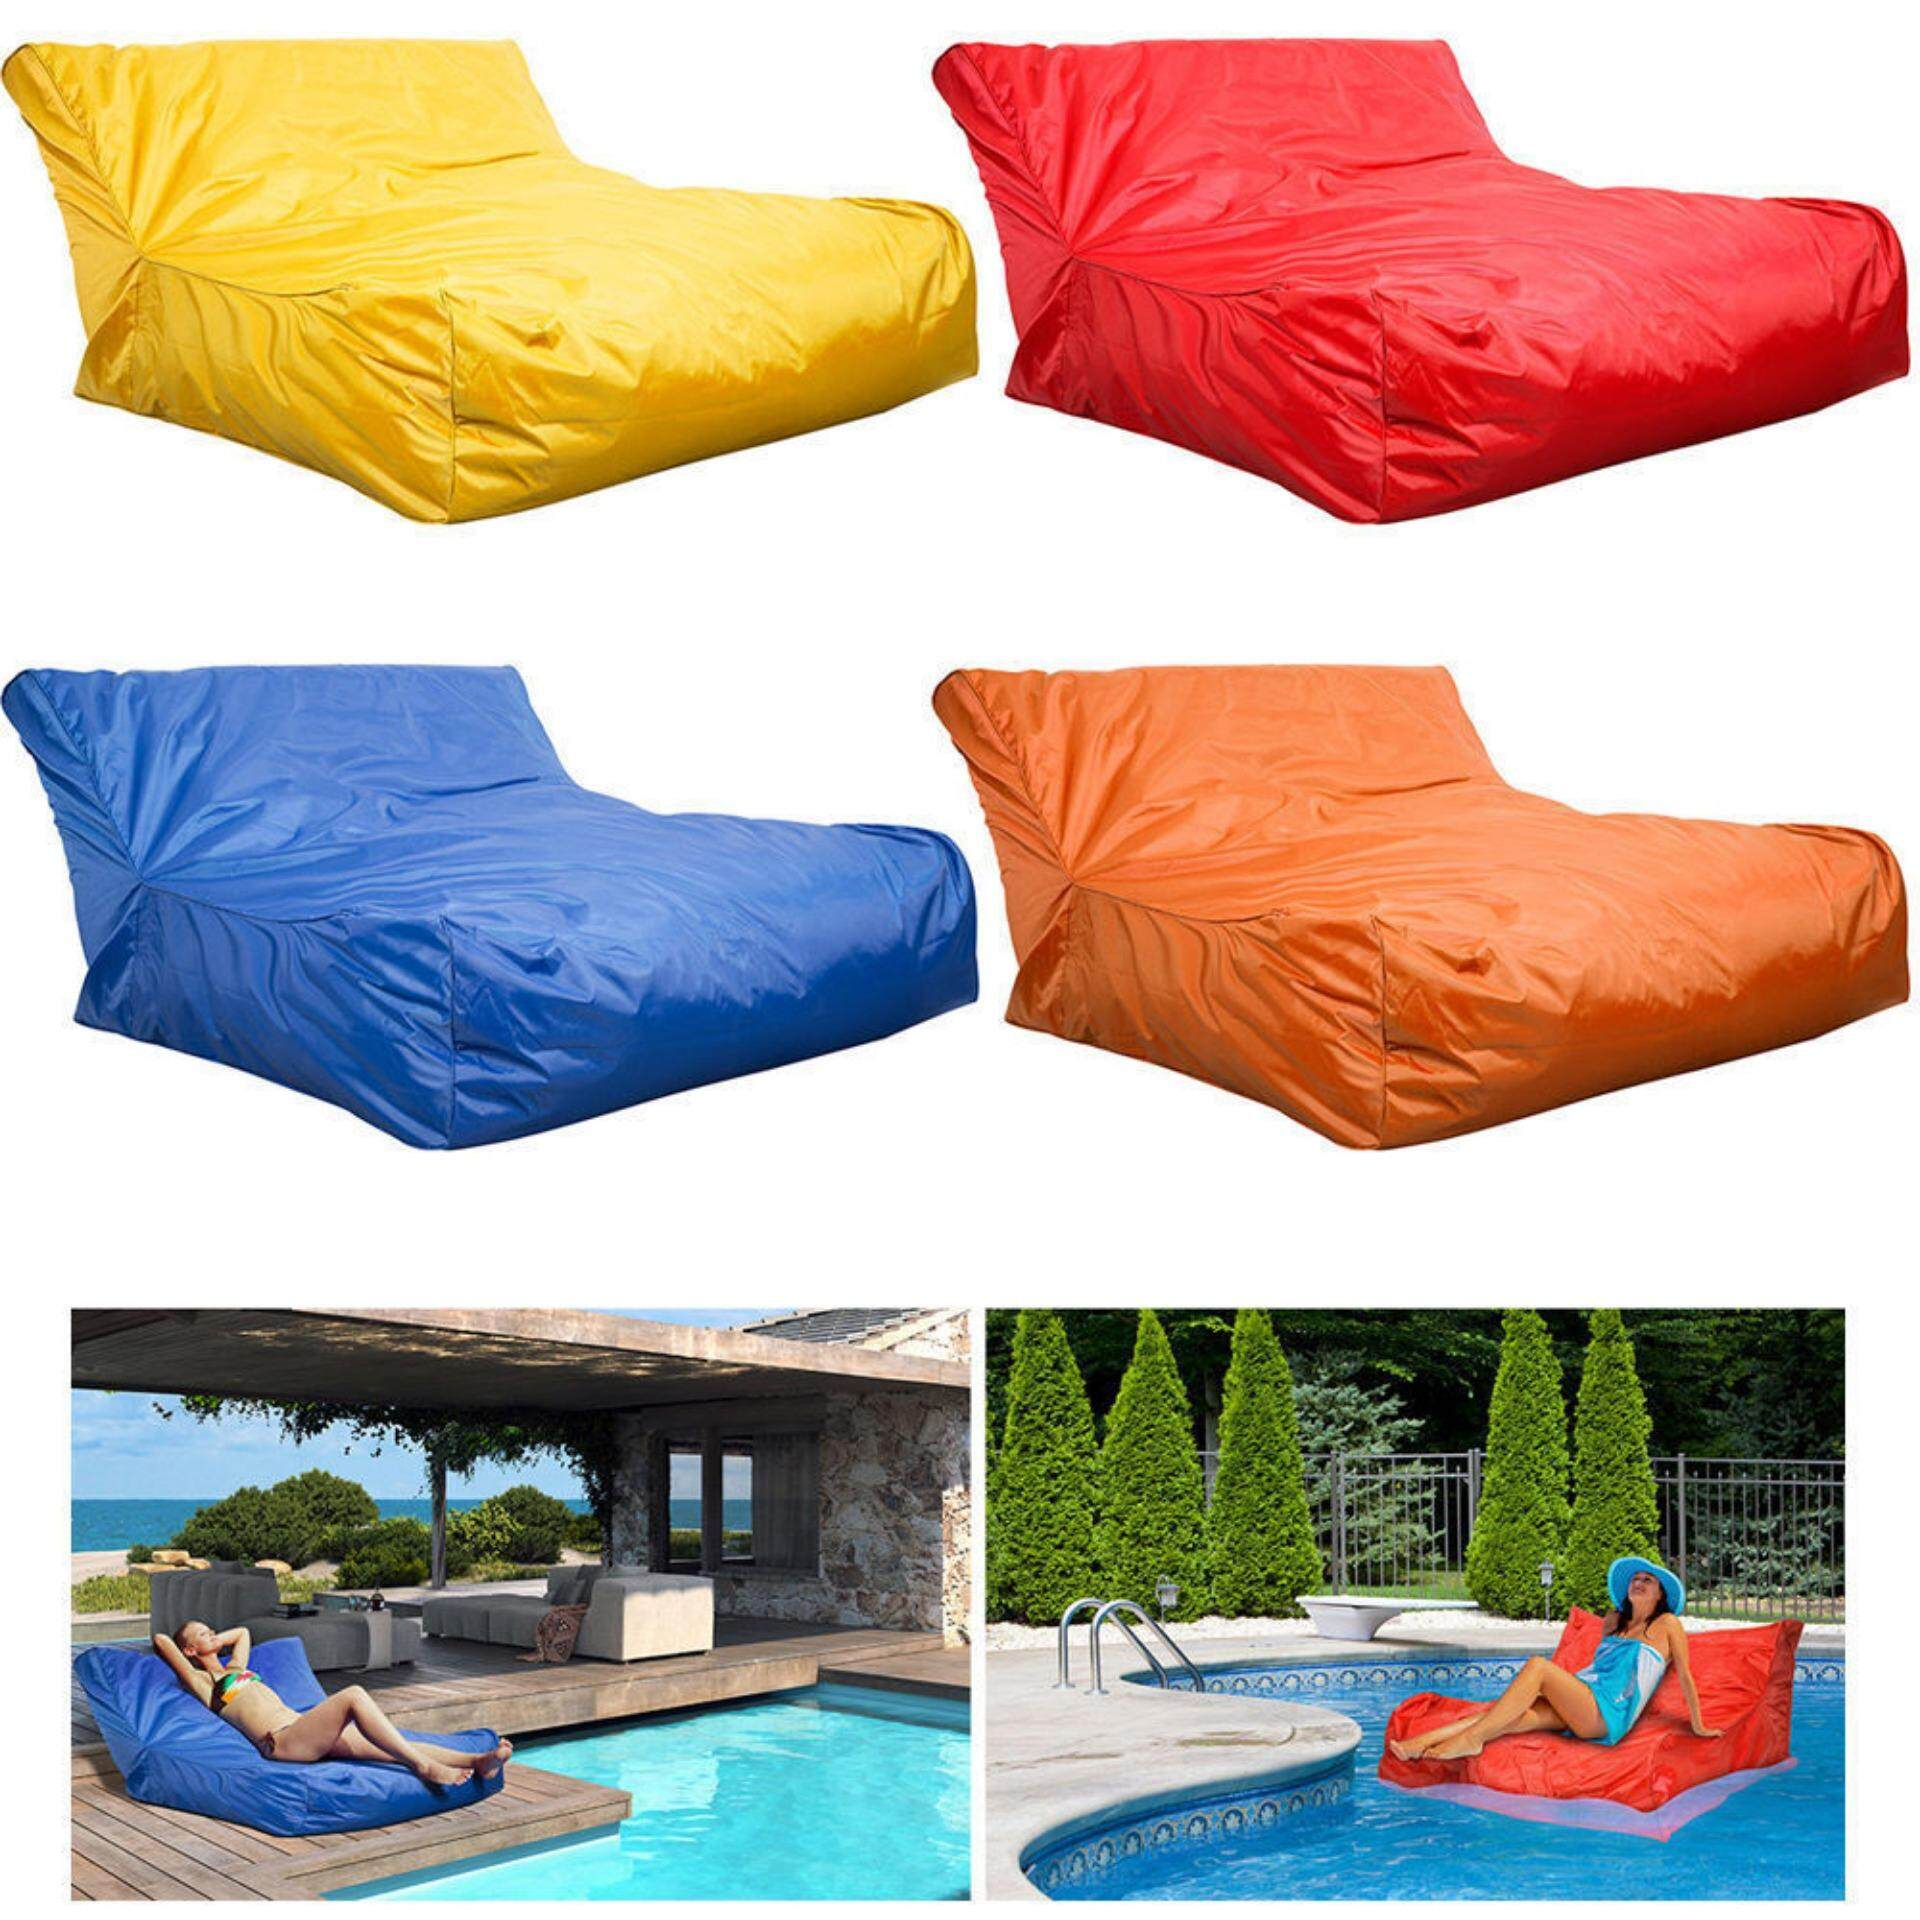 minxin Swimming Pool Floating Bean Bag Cover Waterproof Reading Relaxing Soft Lounge Chair Sofa Yellow